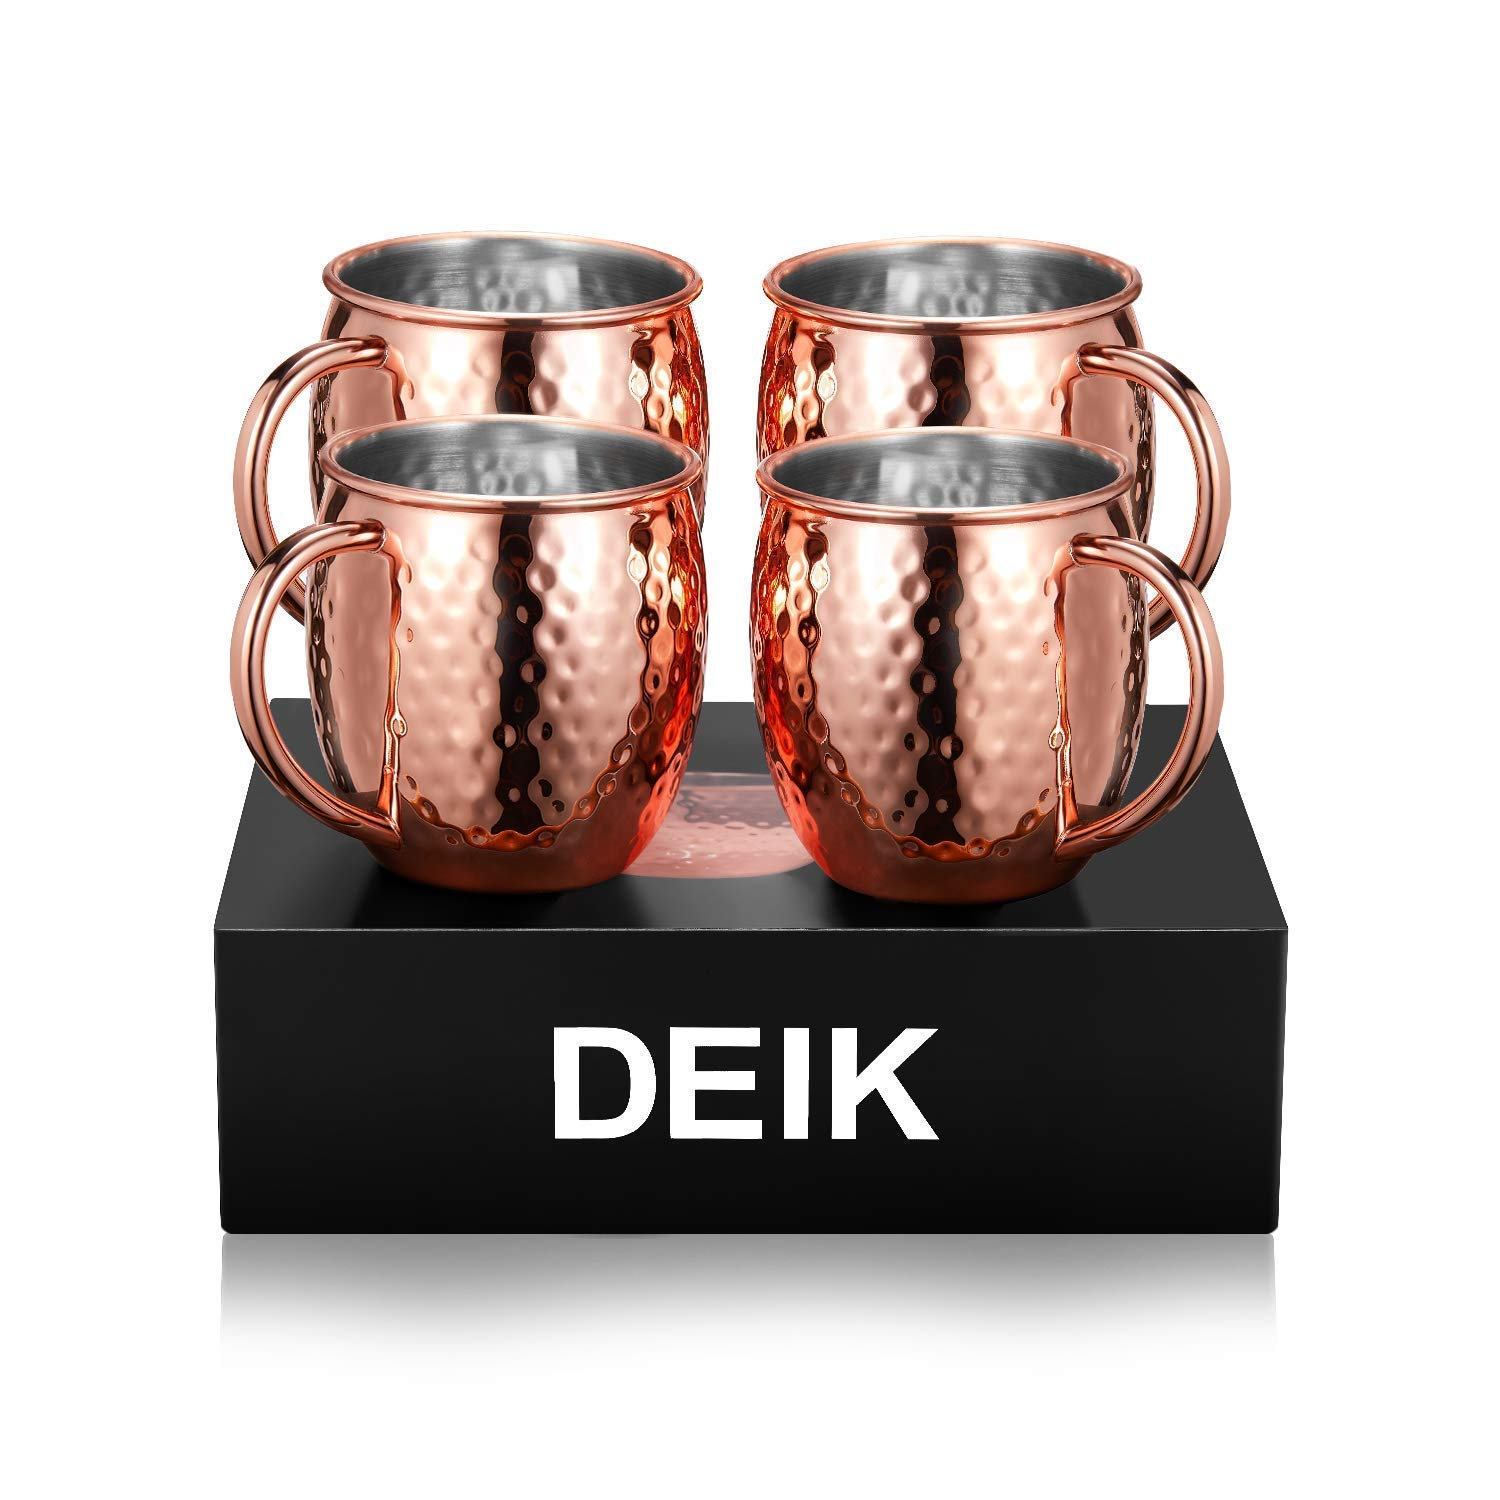 Deik Moscow Mule Mugs, 100% Handcrafted Copper Mule Cup Set of 4, Food-safe Copper Mugs 16 Ounce with Brass Handle and Stainless-Steel Lining, for Chilled Drinks by Deik